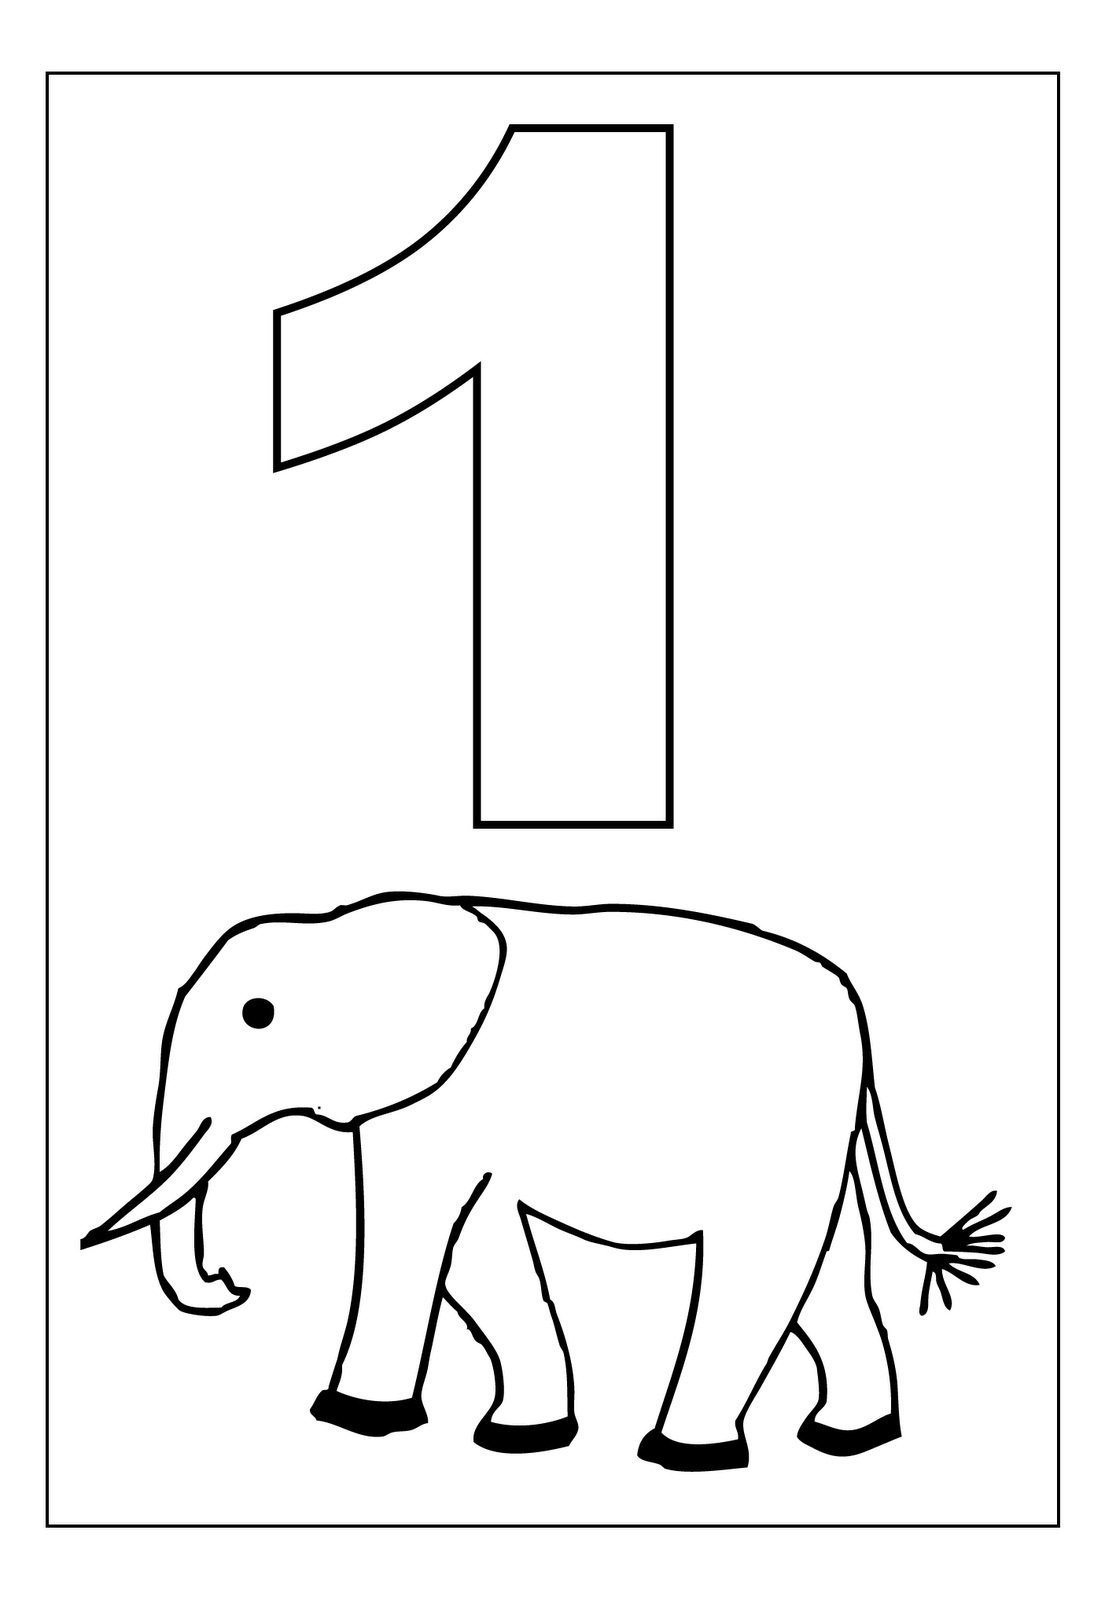 coloring number pages - photo#35